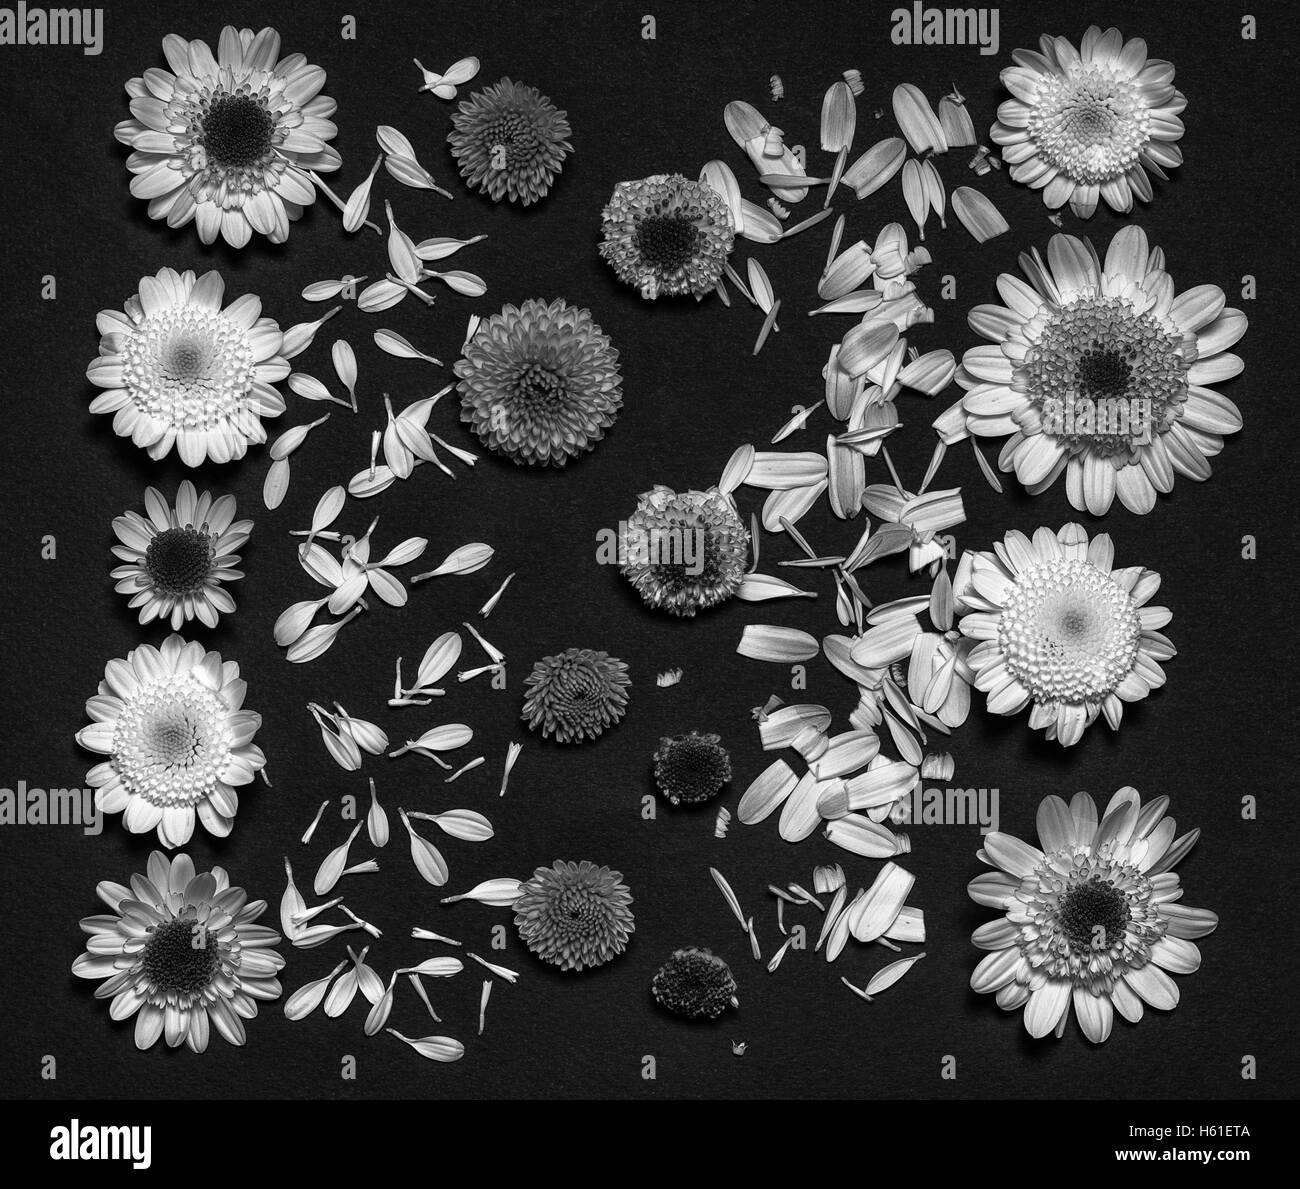 Chrysanthemum Black And White Stock Photos Images Alamy